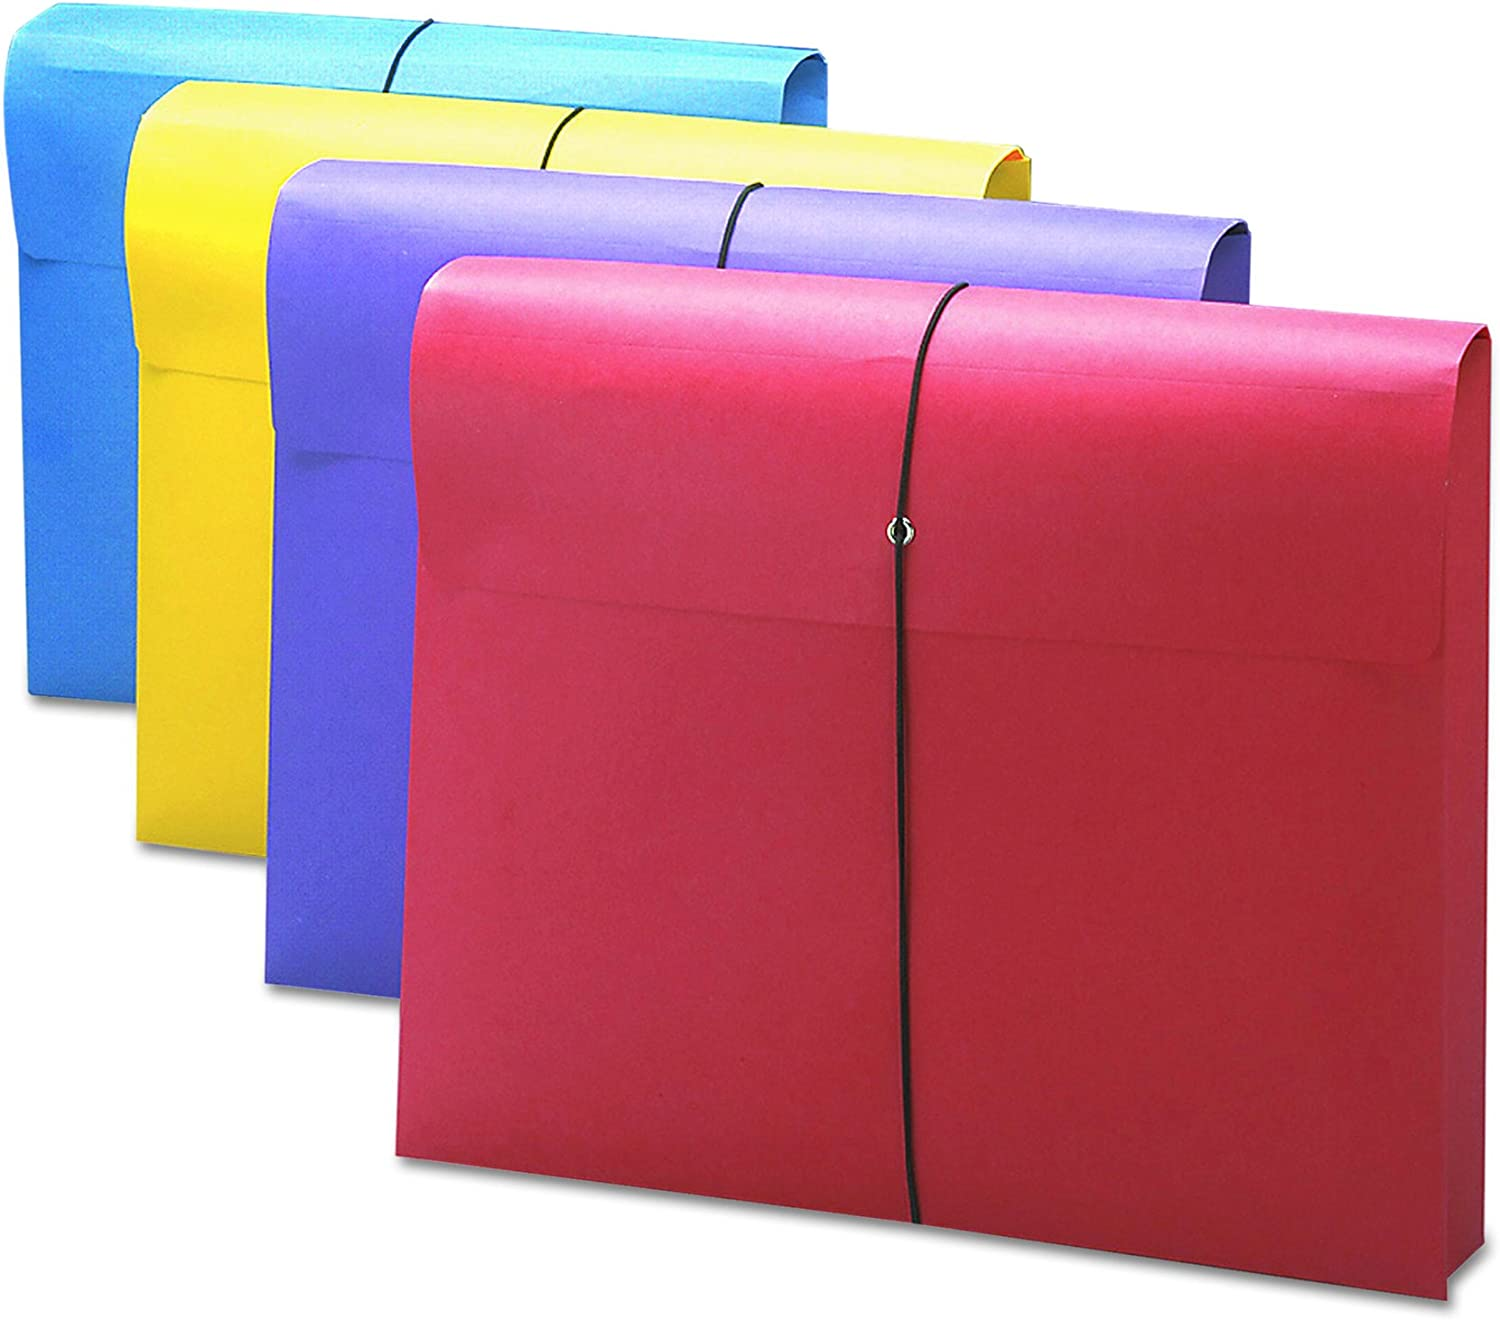 """Smead Expanding File Wallet with Antimicrobial Product Protection,Closure, 2"""" Expansion,Closure, Letter Size, Assorted Colors, 4 per Pack (77291)"""